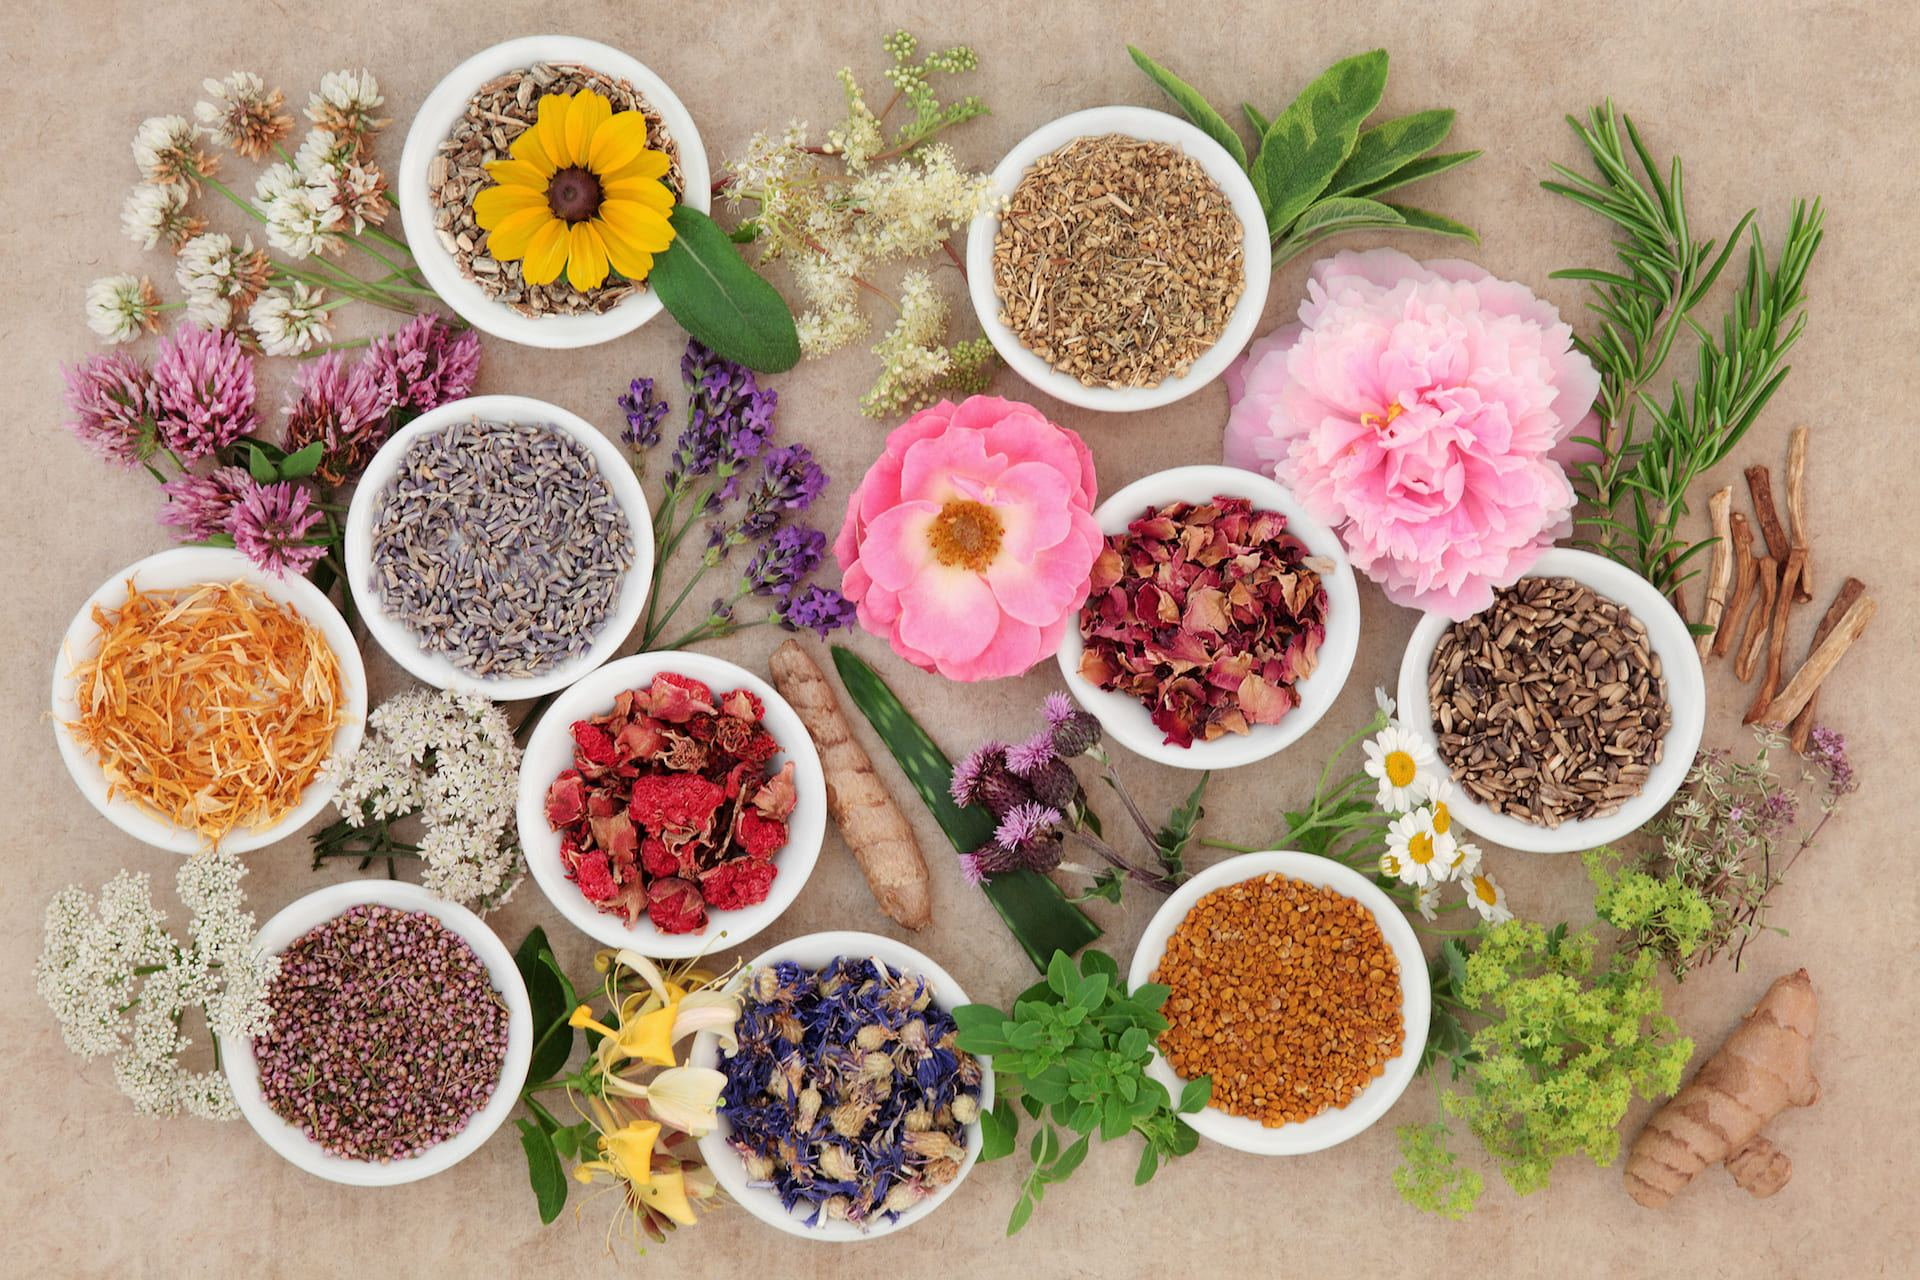 Herbal Supplements Safety Recommendations